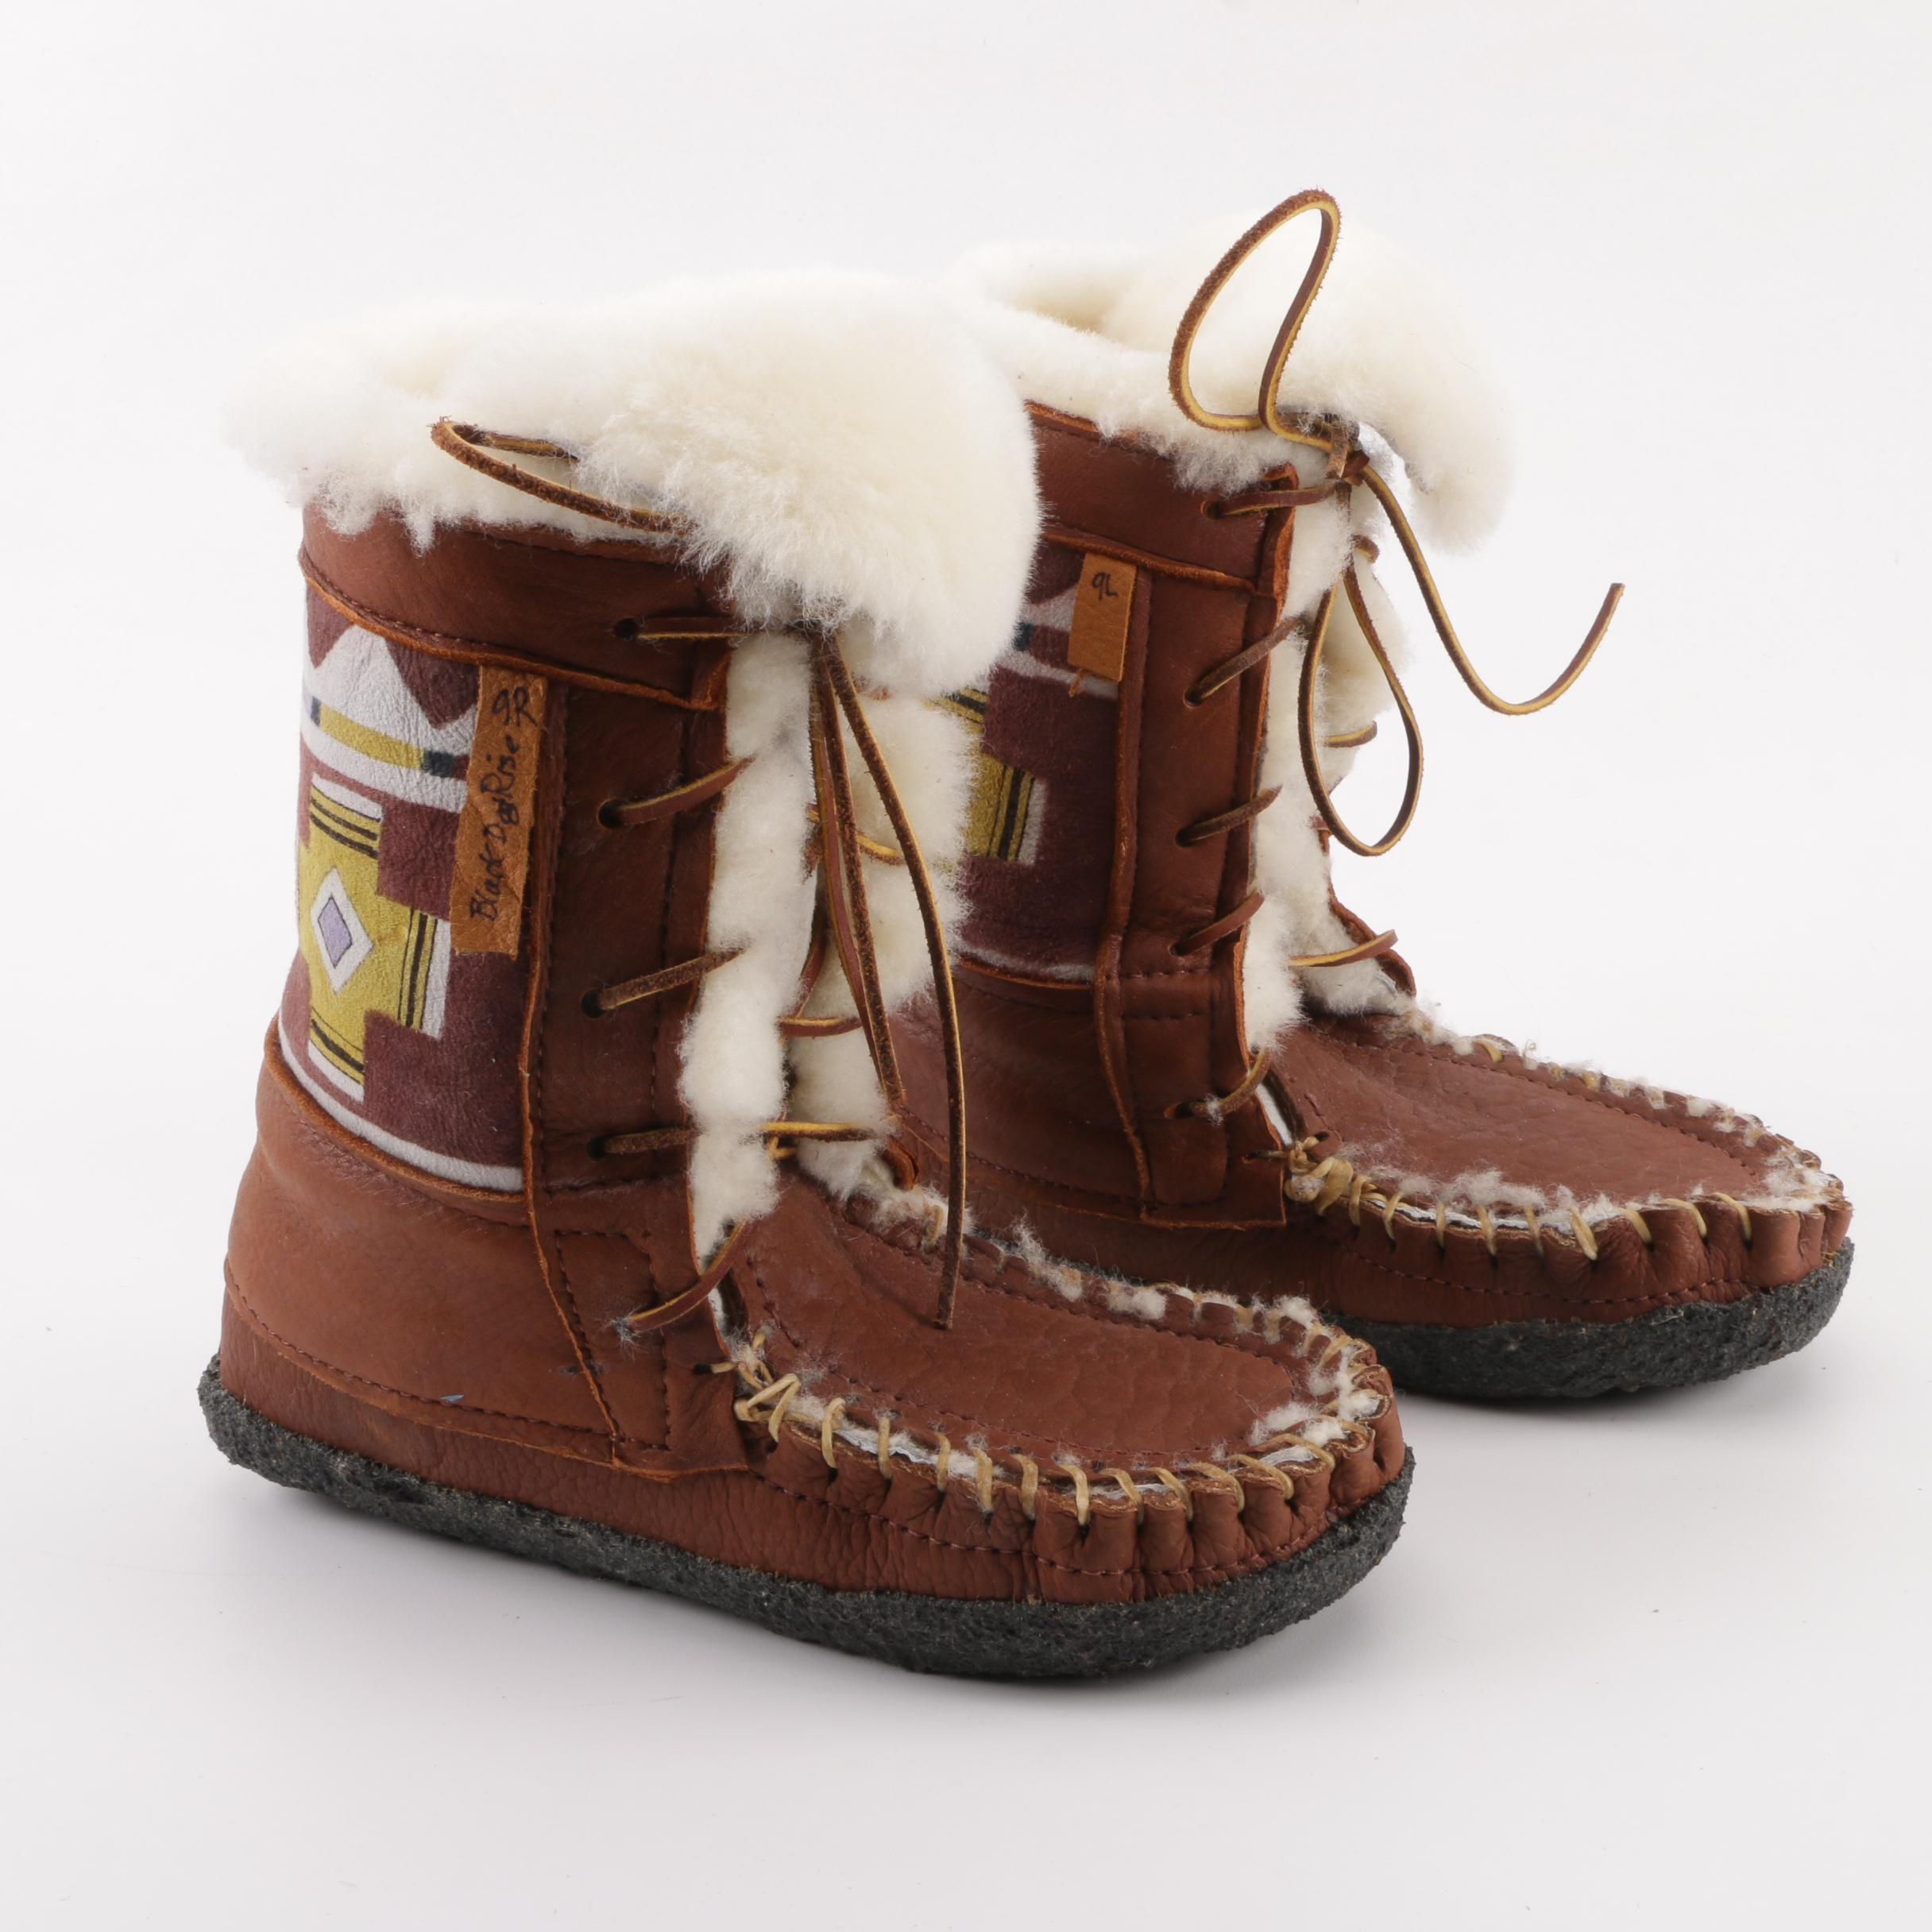 Black Dog Rise Handmade and Hand-Painted Wearable Art Mukluk Style Boots